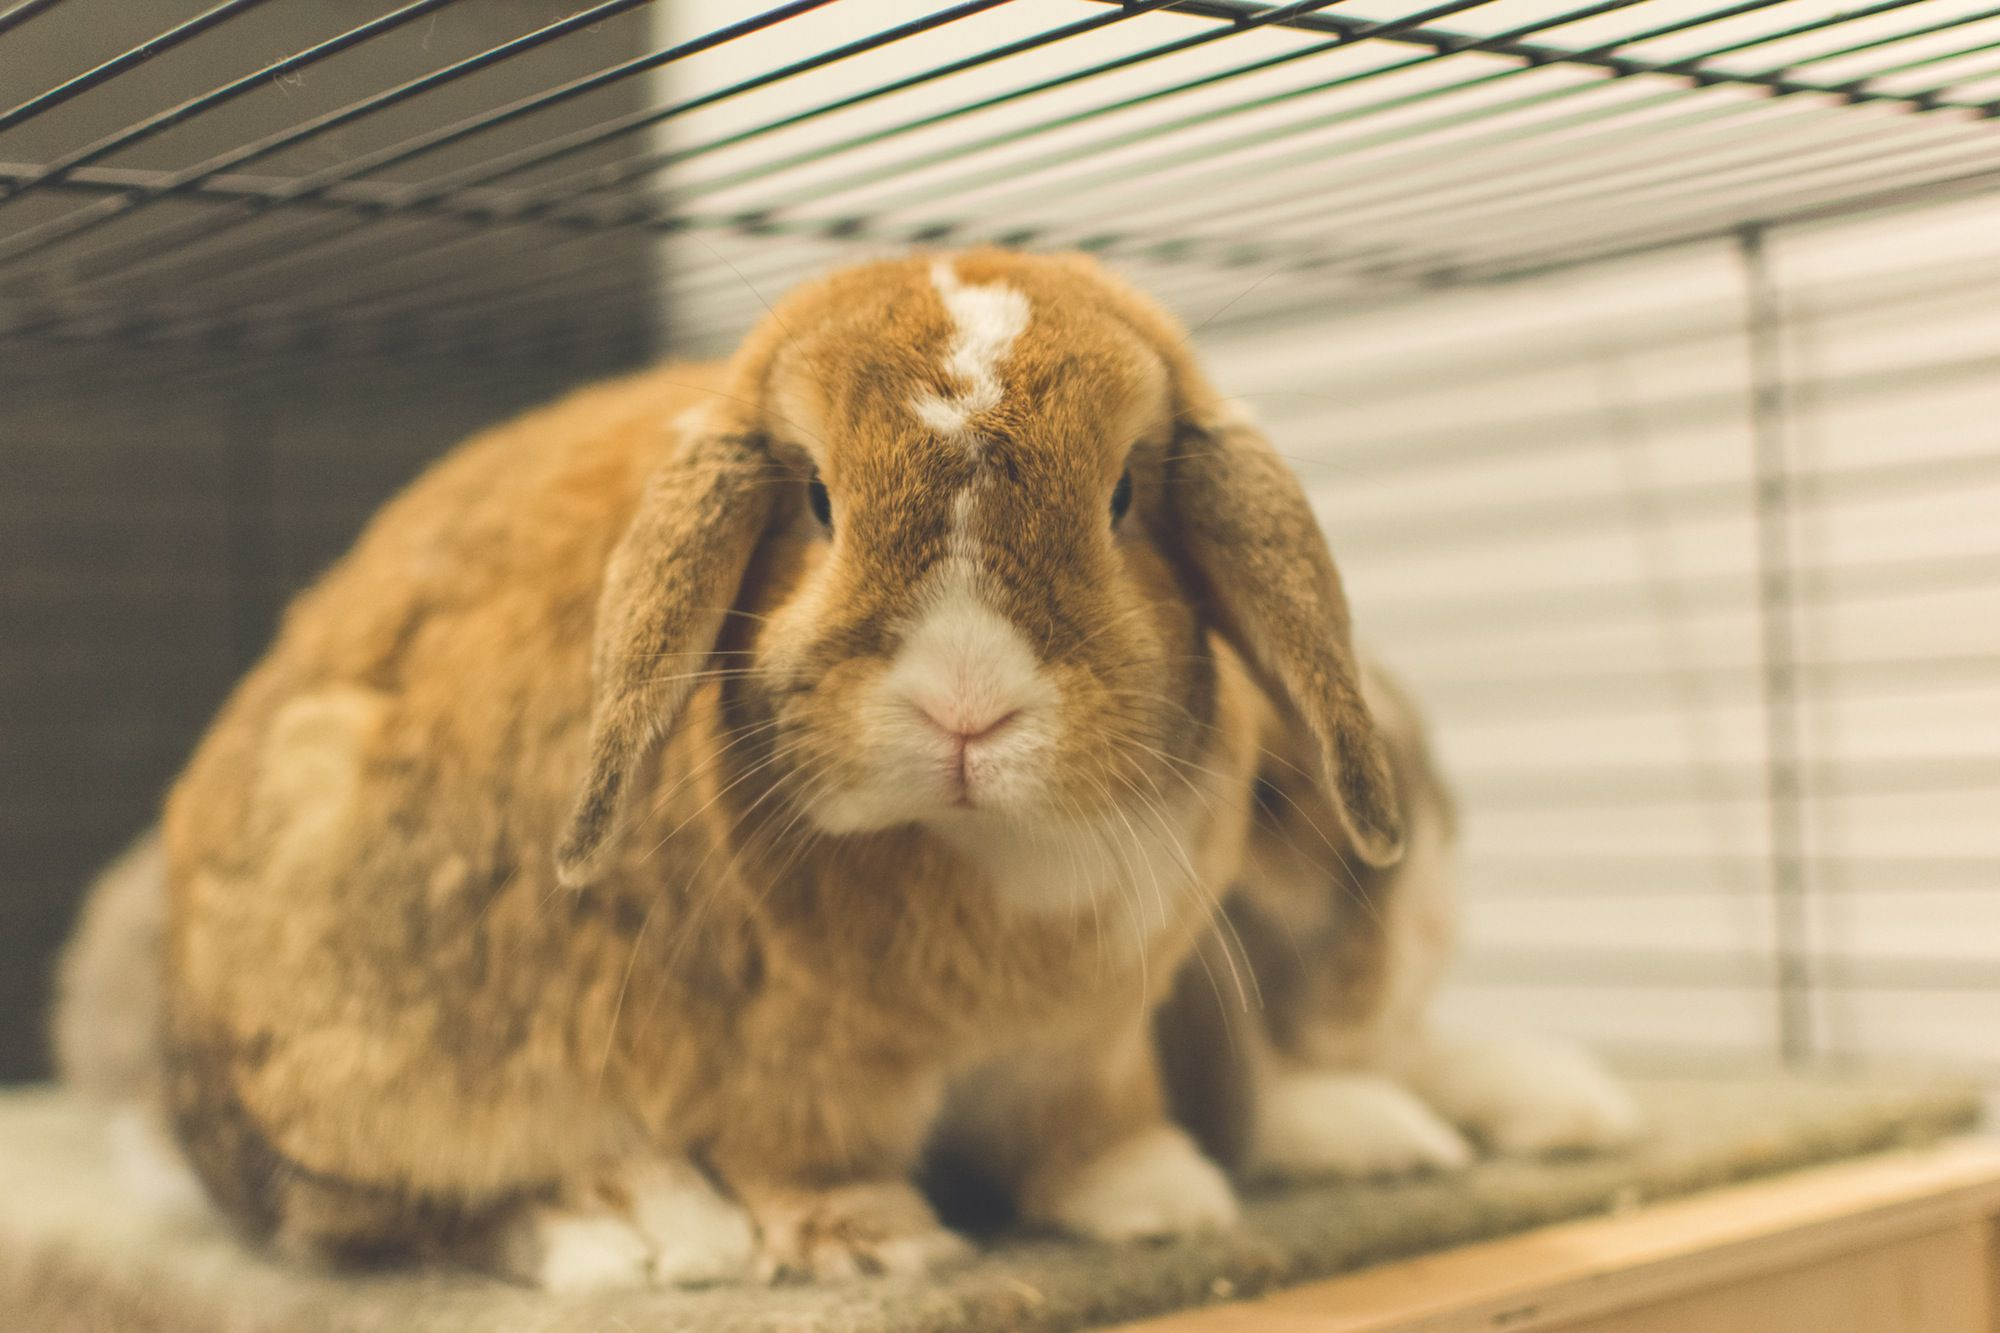 20 signs that your rabbit is sick